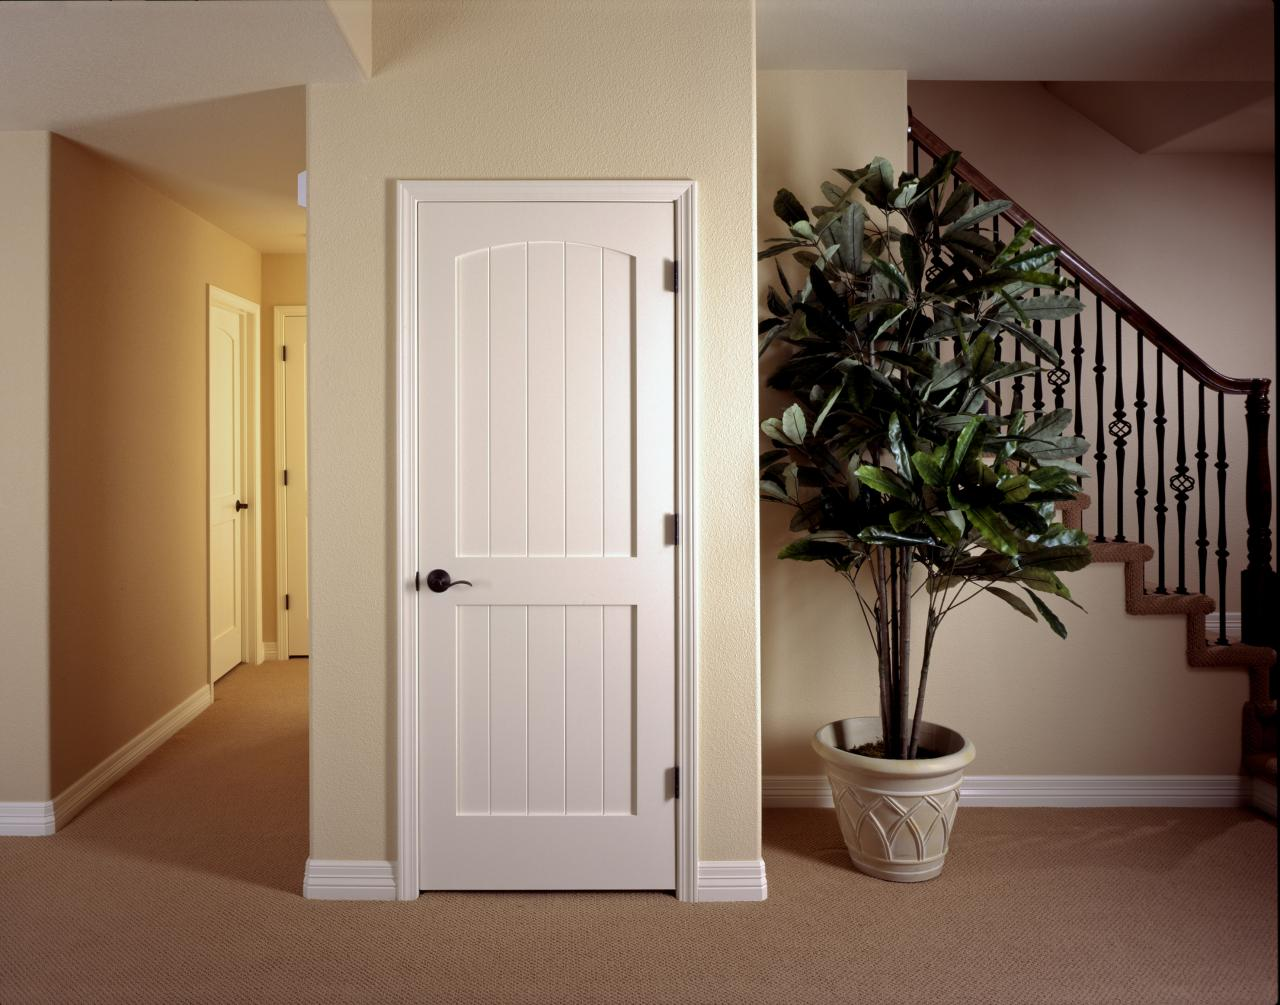 Trustile paint grade mdf interior doors in chicago at glenview mdf interior door trustile v grove series eventelaan Images